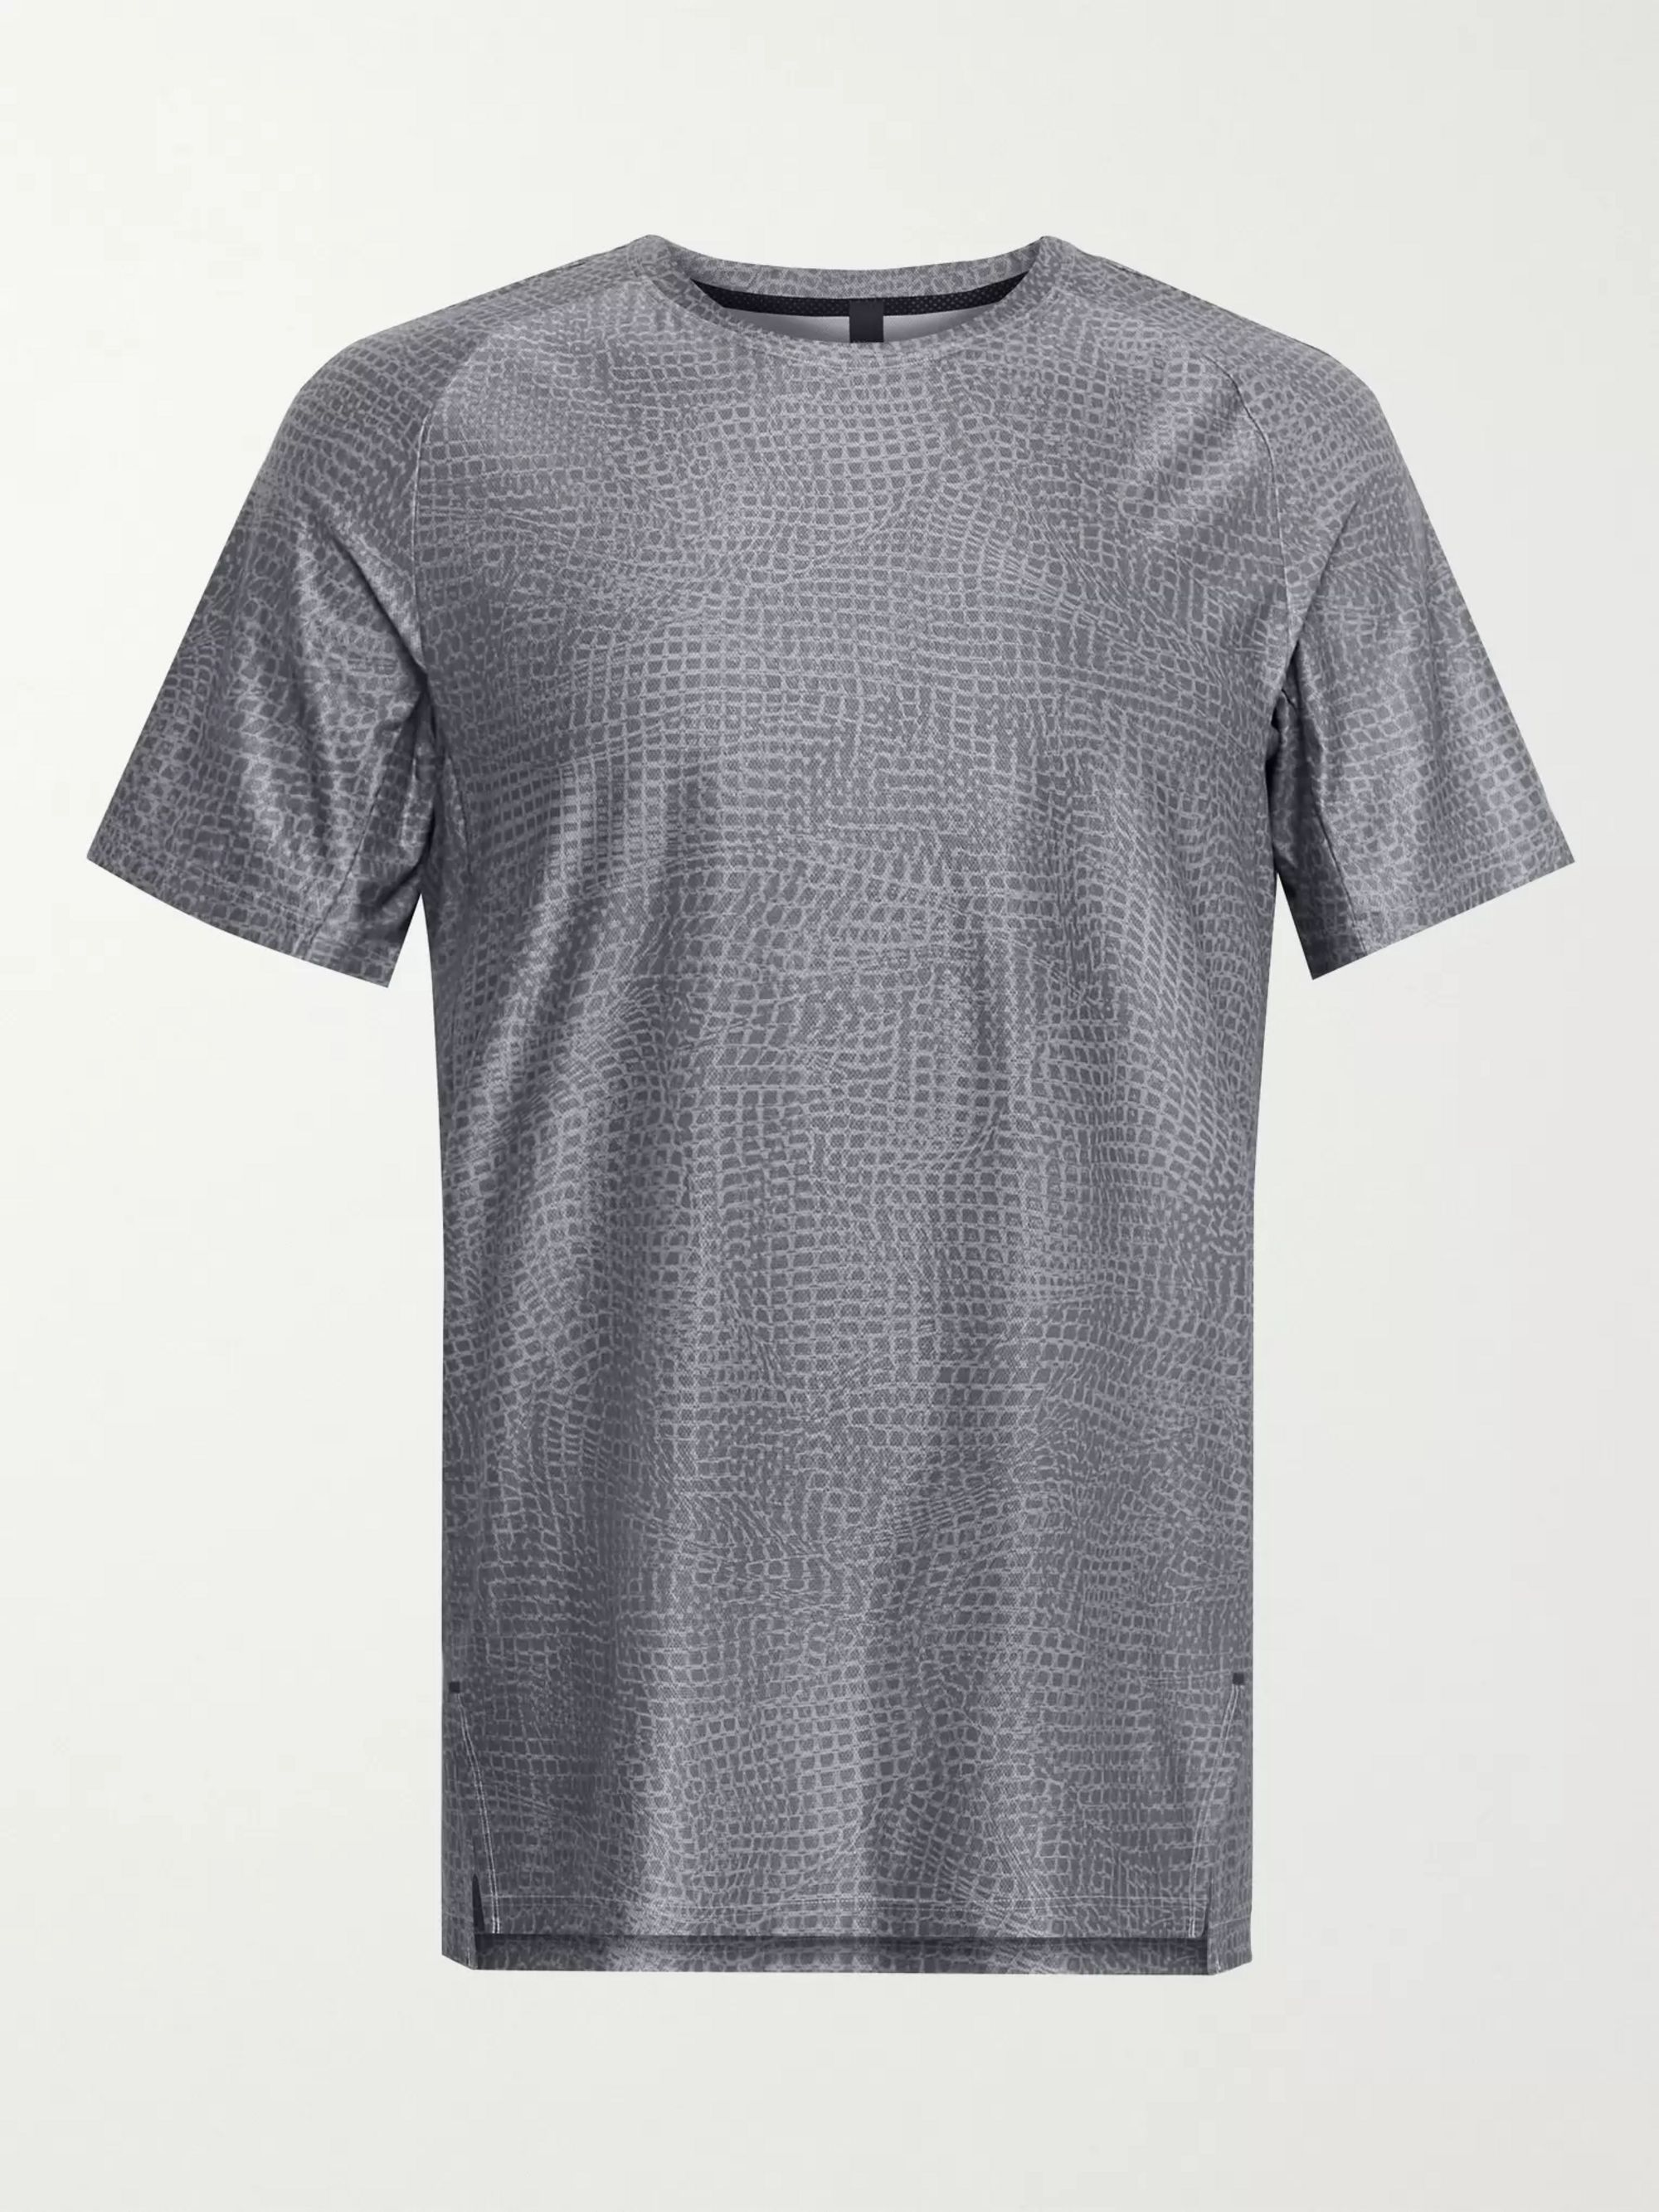 LULULEMON LTT Printed Stretch-Mesh T-Shirt